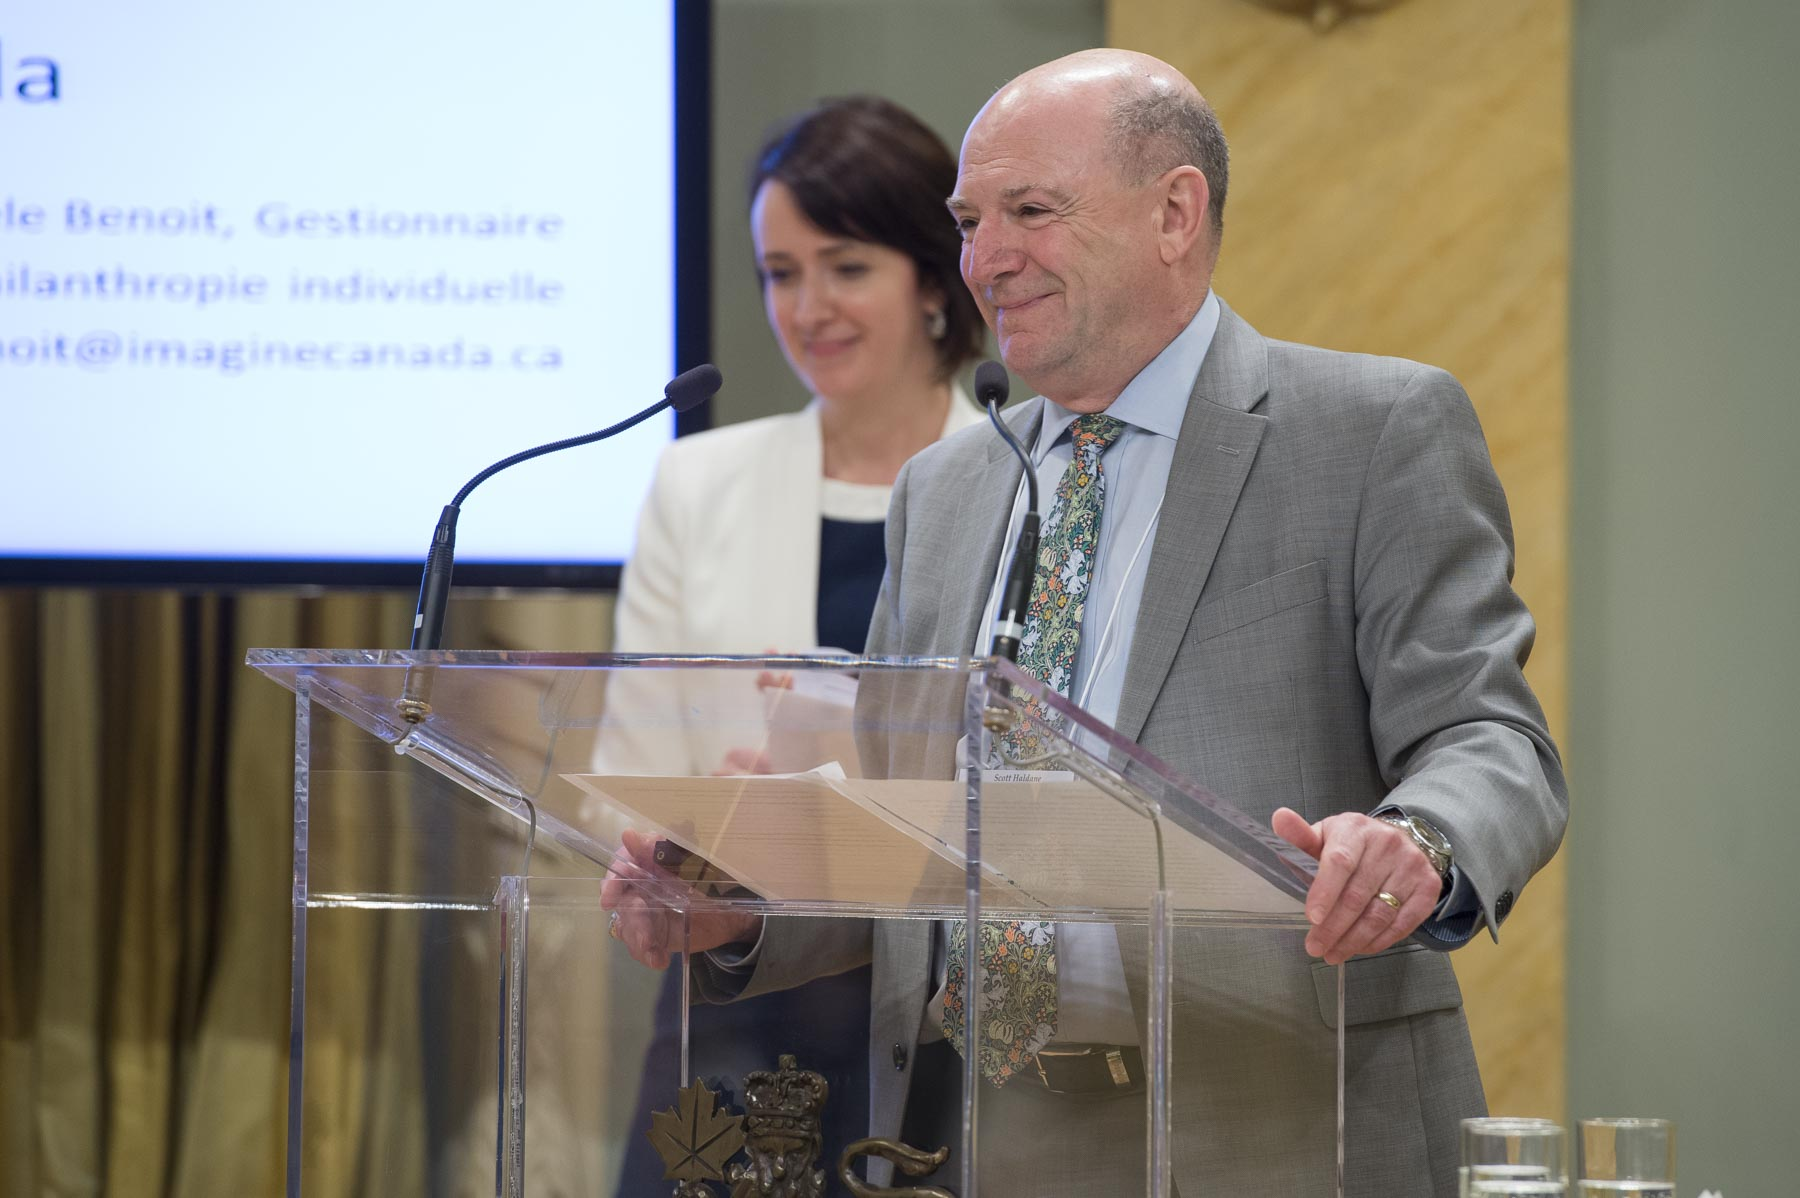 Scott Haldane, President and CEO, and Teresa Marques, Director of Strategic Partnerships at the Rideau Hall Foundation launched the Giving Behaviour Project, which is the continuity of the My Giving Moment campaign.